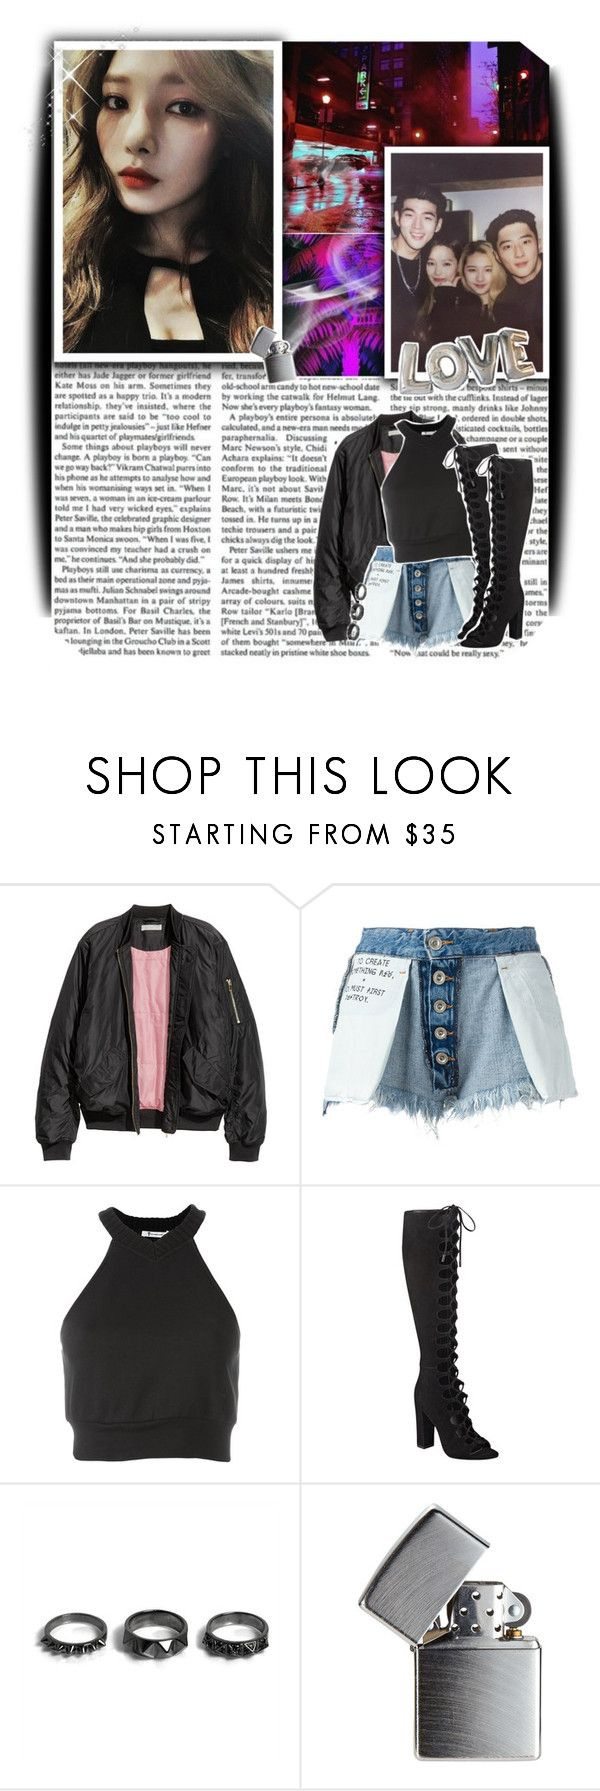 """""""black joker // 396 //"""" by cidinha-001 ❤ liked on Polyvore featuring H&M, Unravel, T By Alexander Wang, Kendall + Kylie, Noir Jewelry, GET LOST, Zippo, 2017, somi and kard"""